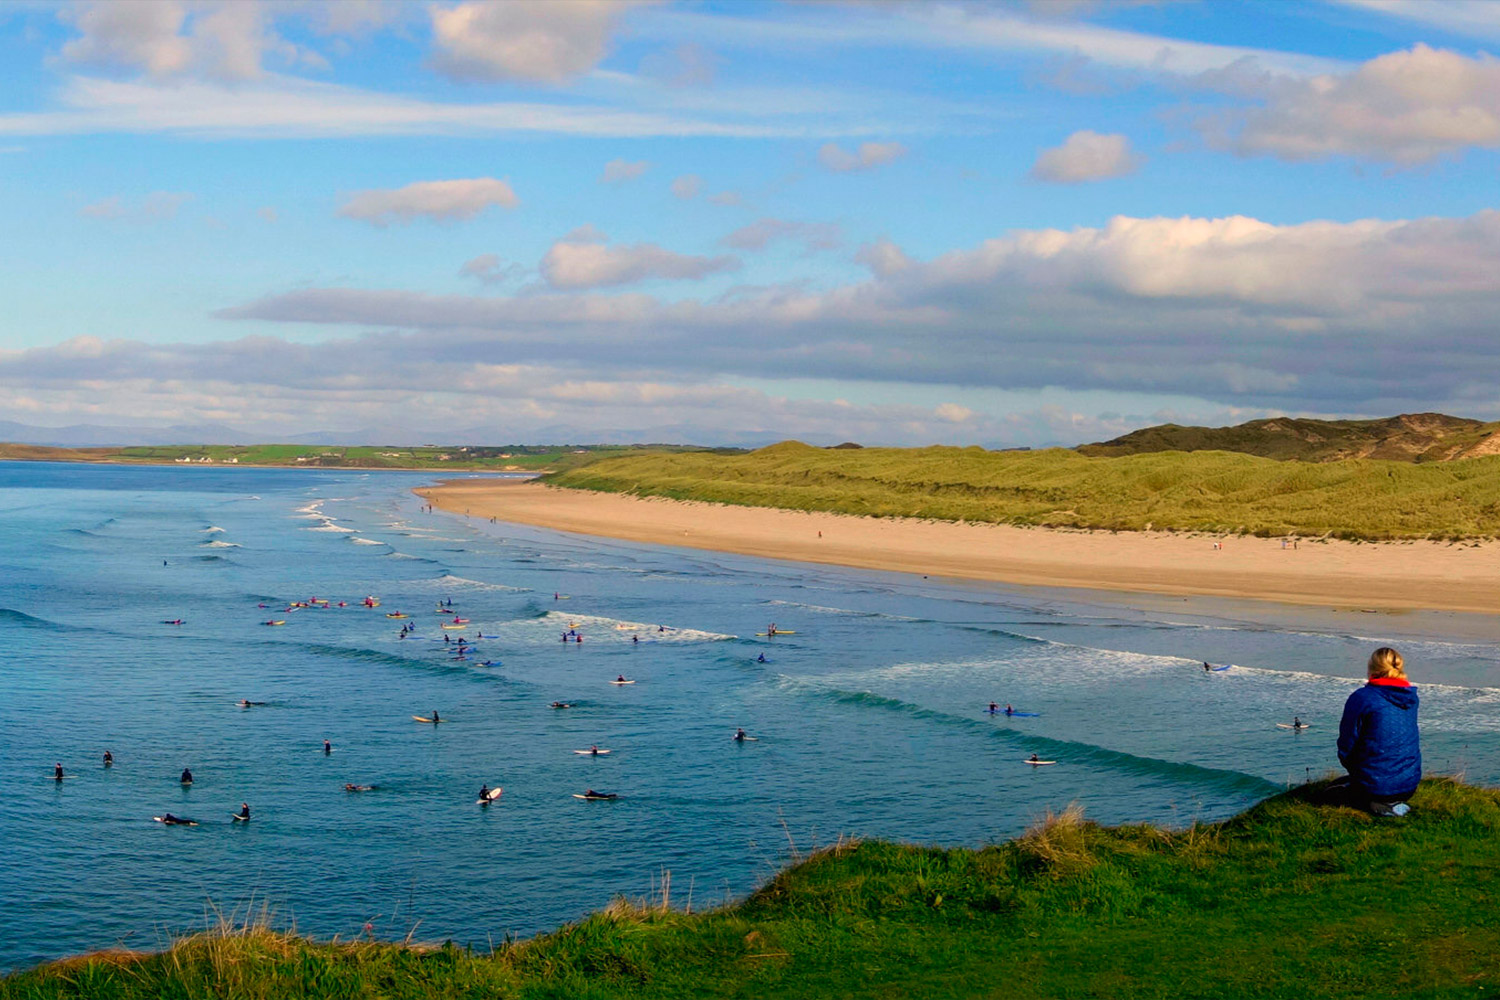 Surfers at Dinegal Beach, Ireland